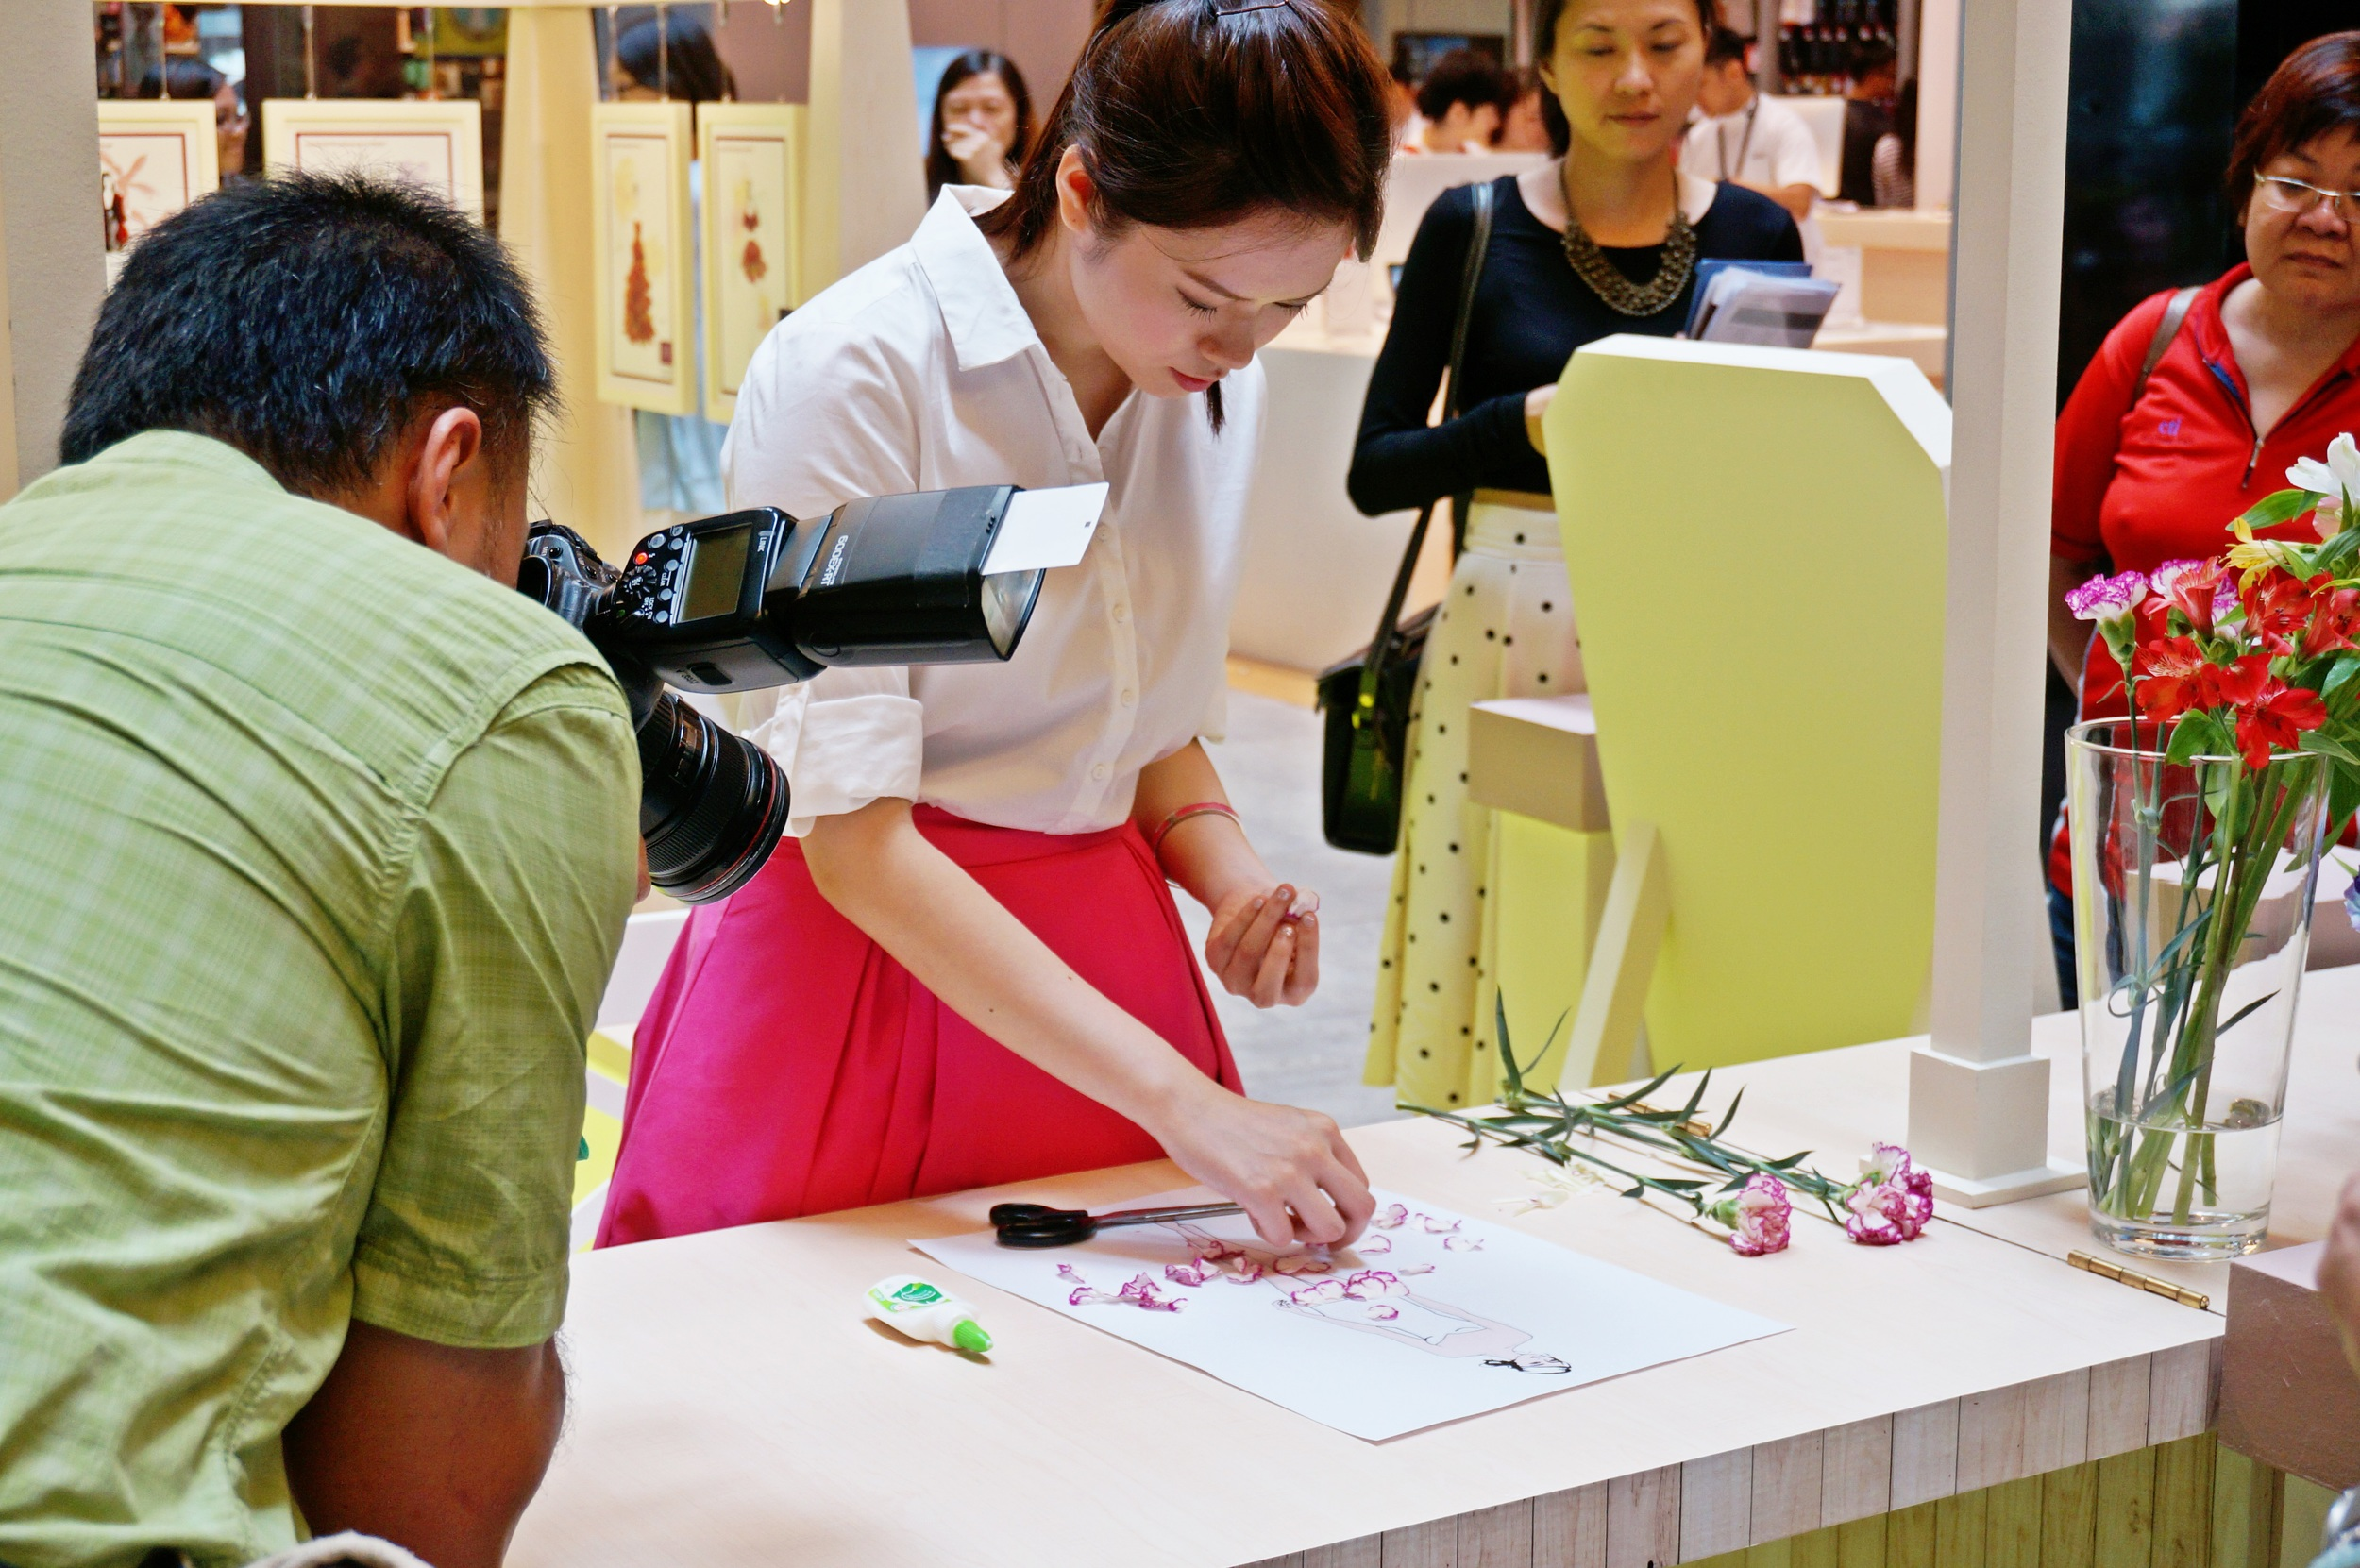 Grace-ciao-fashion-illustrator-retail-mall-live-illustration-workshop-petals-floral-participants-7.jpg